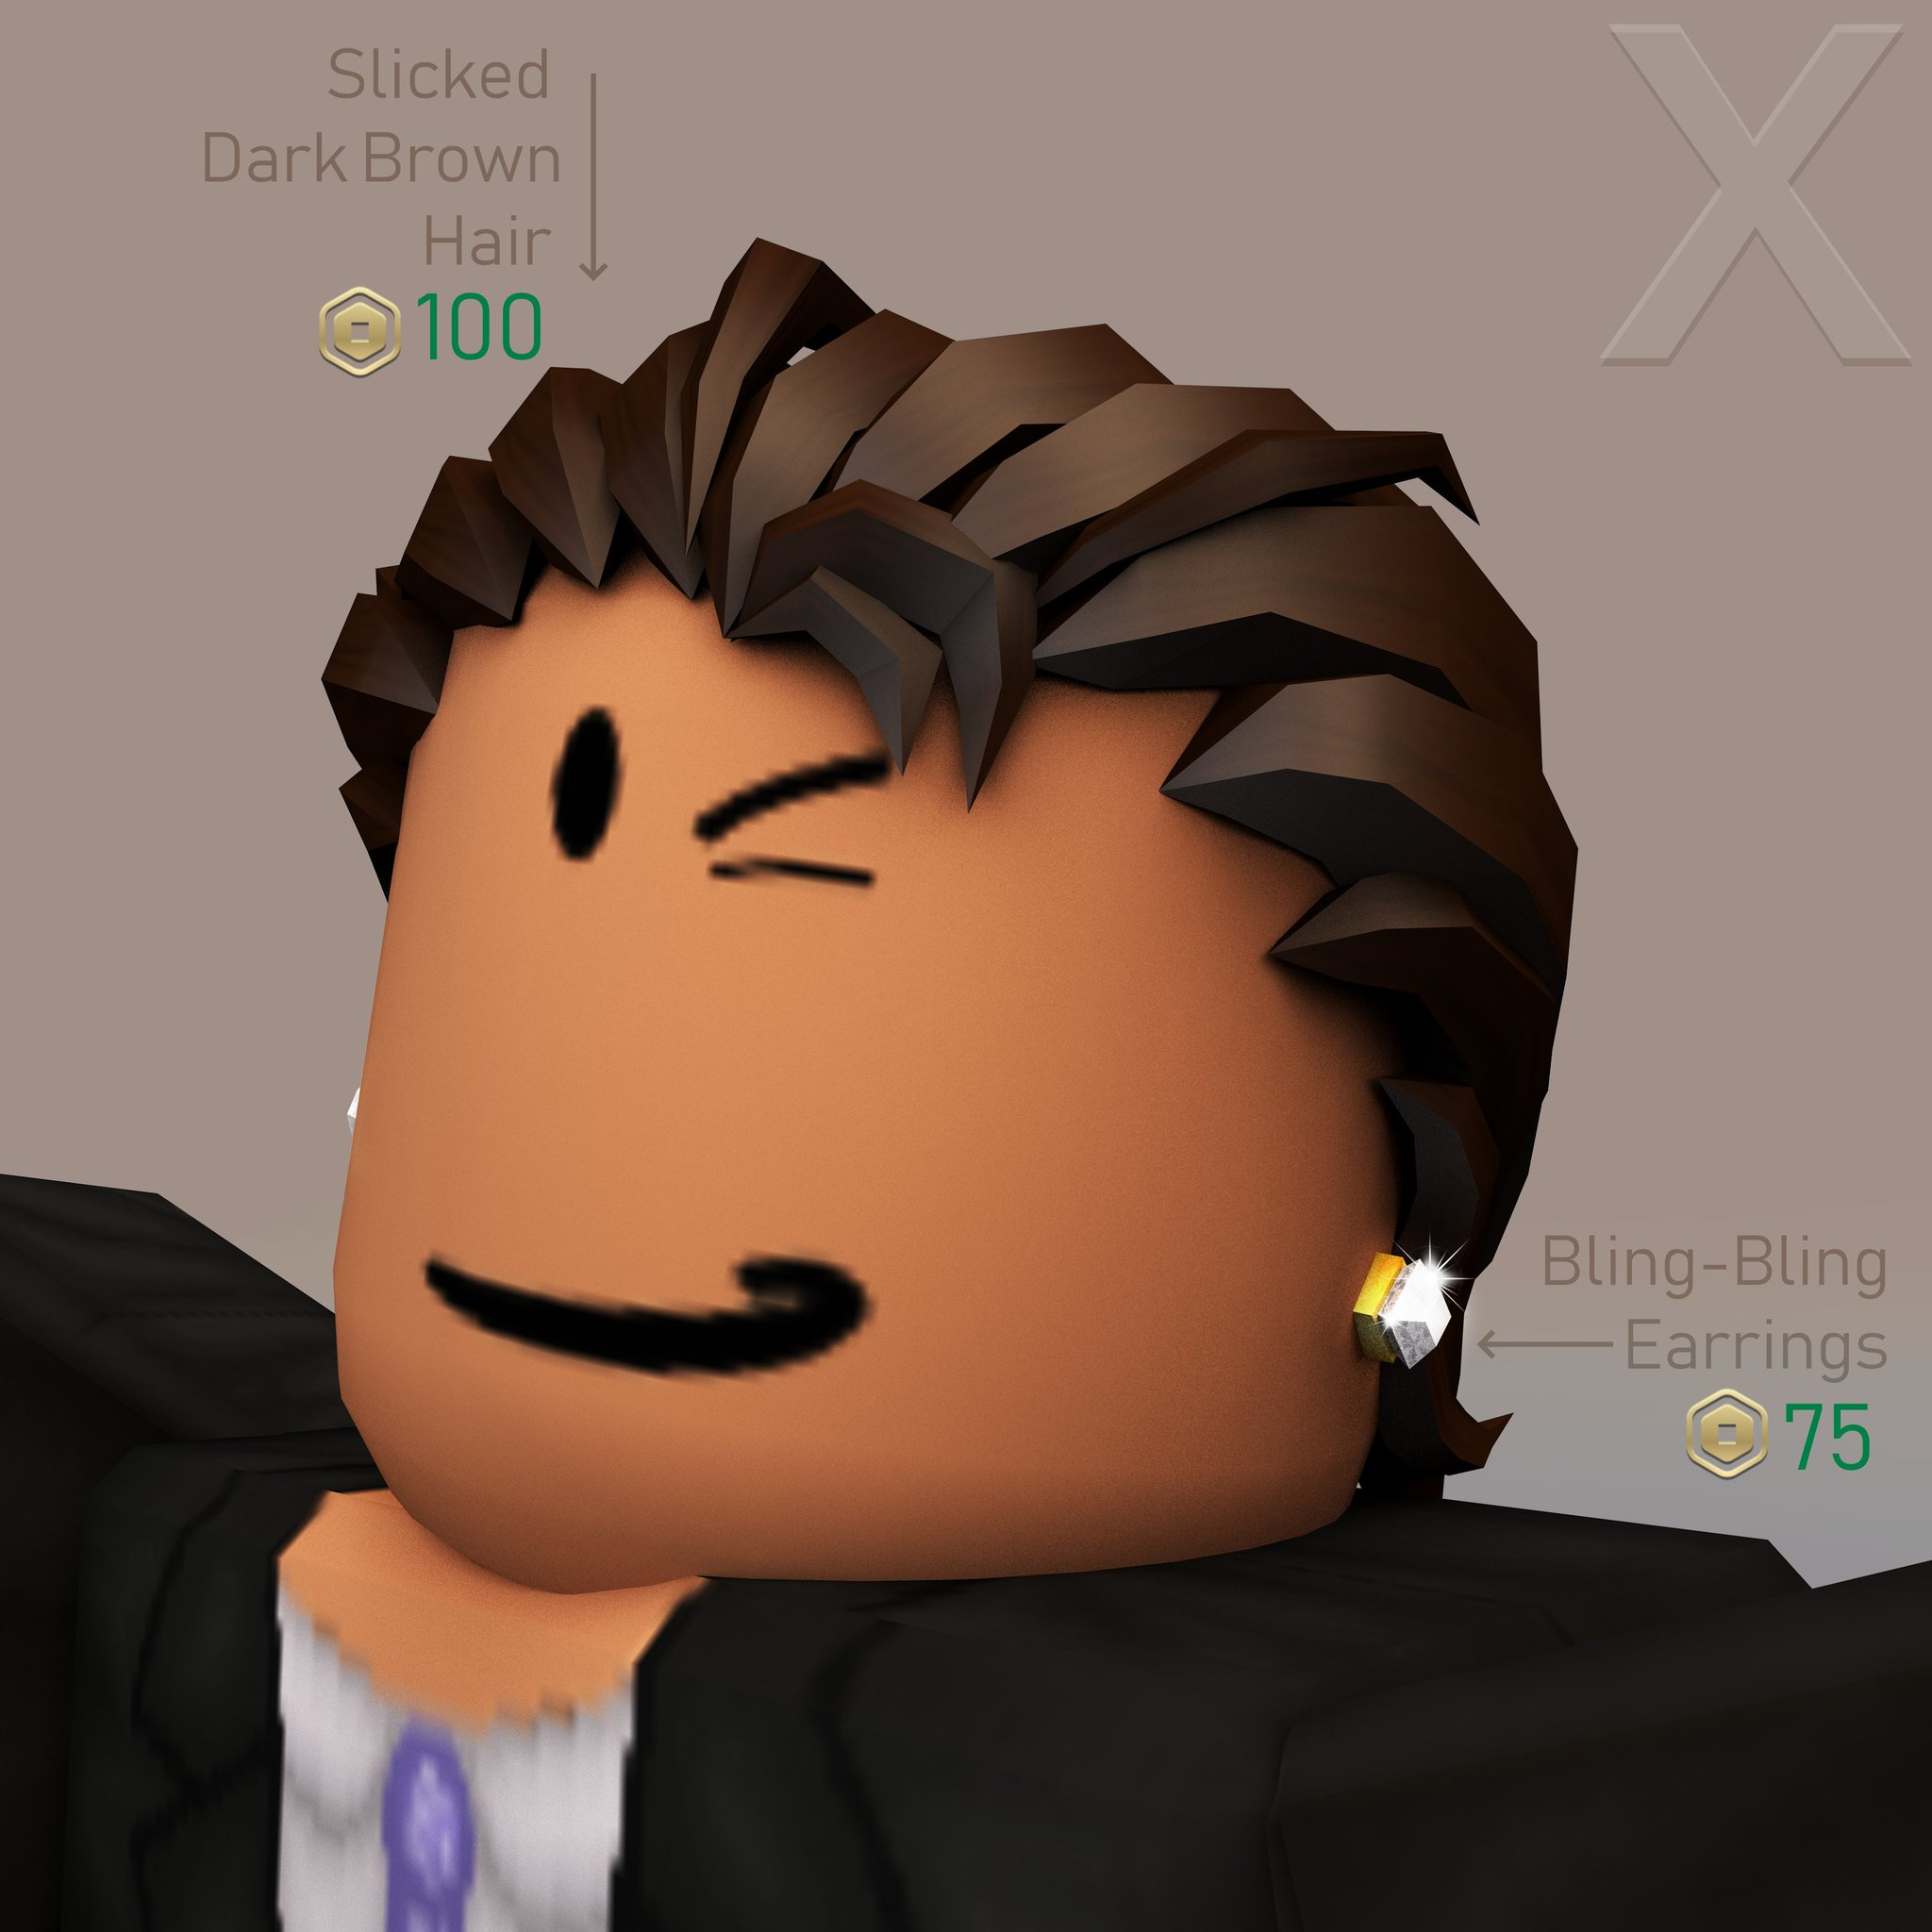 Pin By The Hype House Roblox On Roblox In 2020 Cute Tumblr Wallpaper Roblox Animation Roblox Roblox